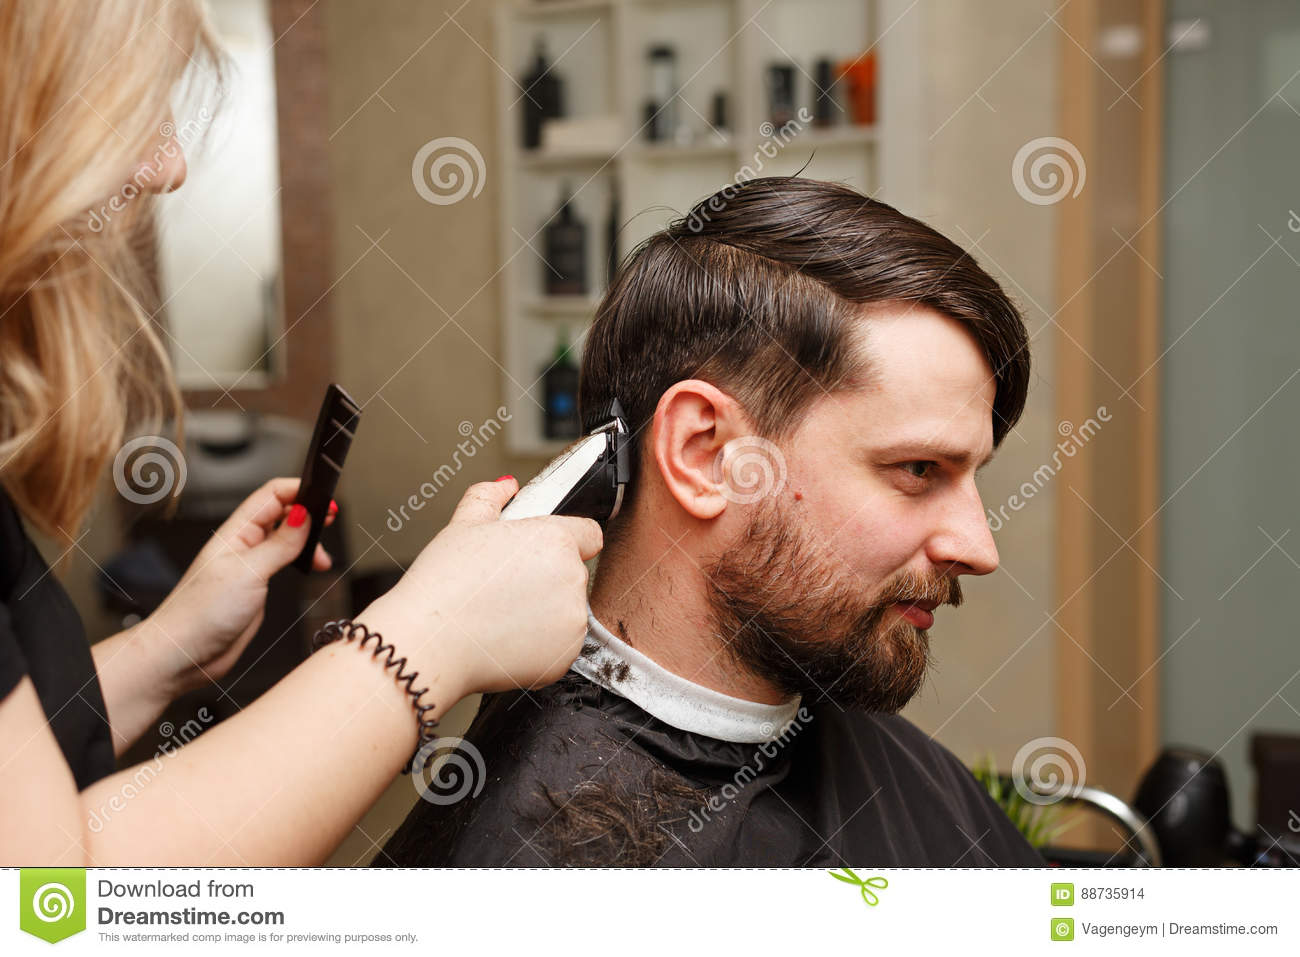 Mens Haircut Stock Photo Image Of Brush Hipster Mustache 88735914